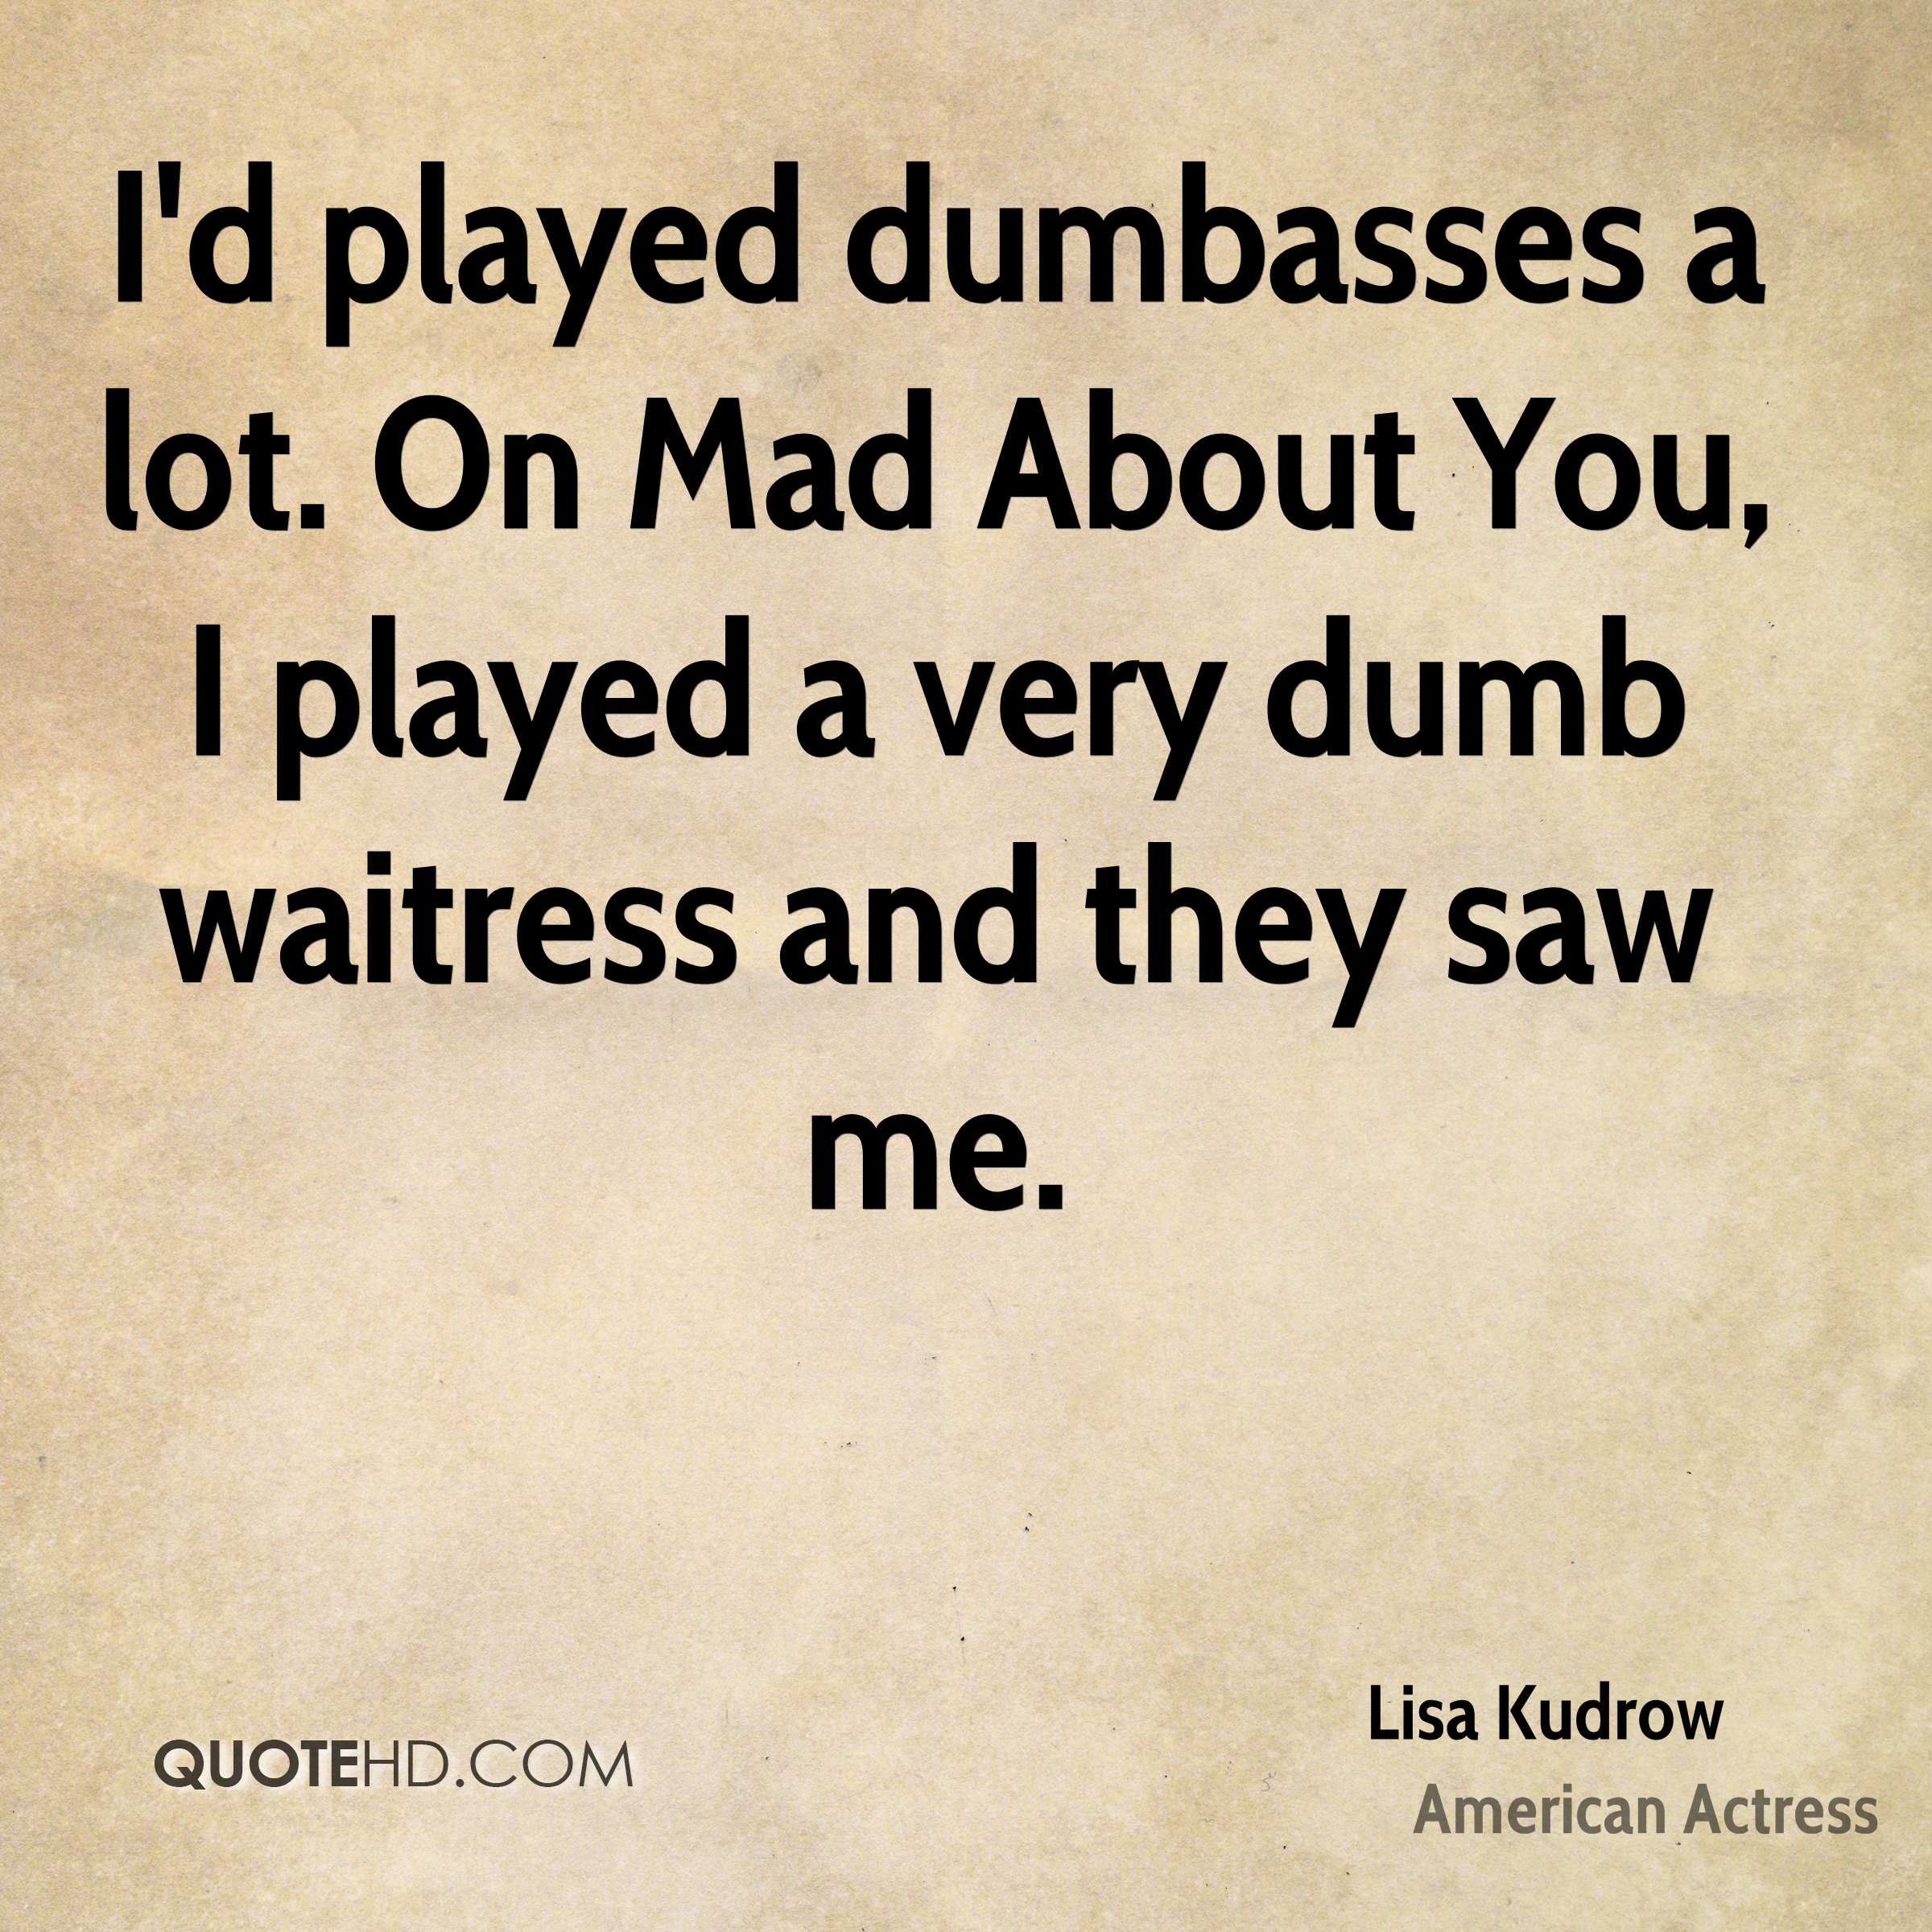 I'd played dumbasses a lot. On Mad About You, I played a very dumb waitress and they saw me.